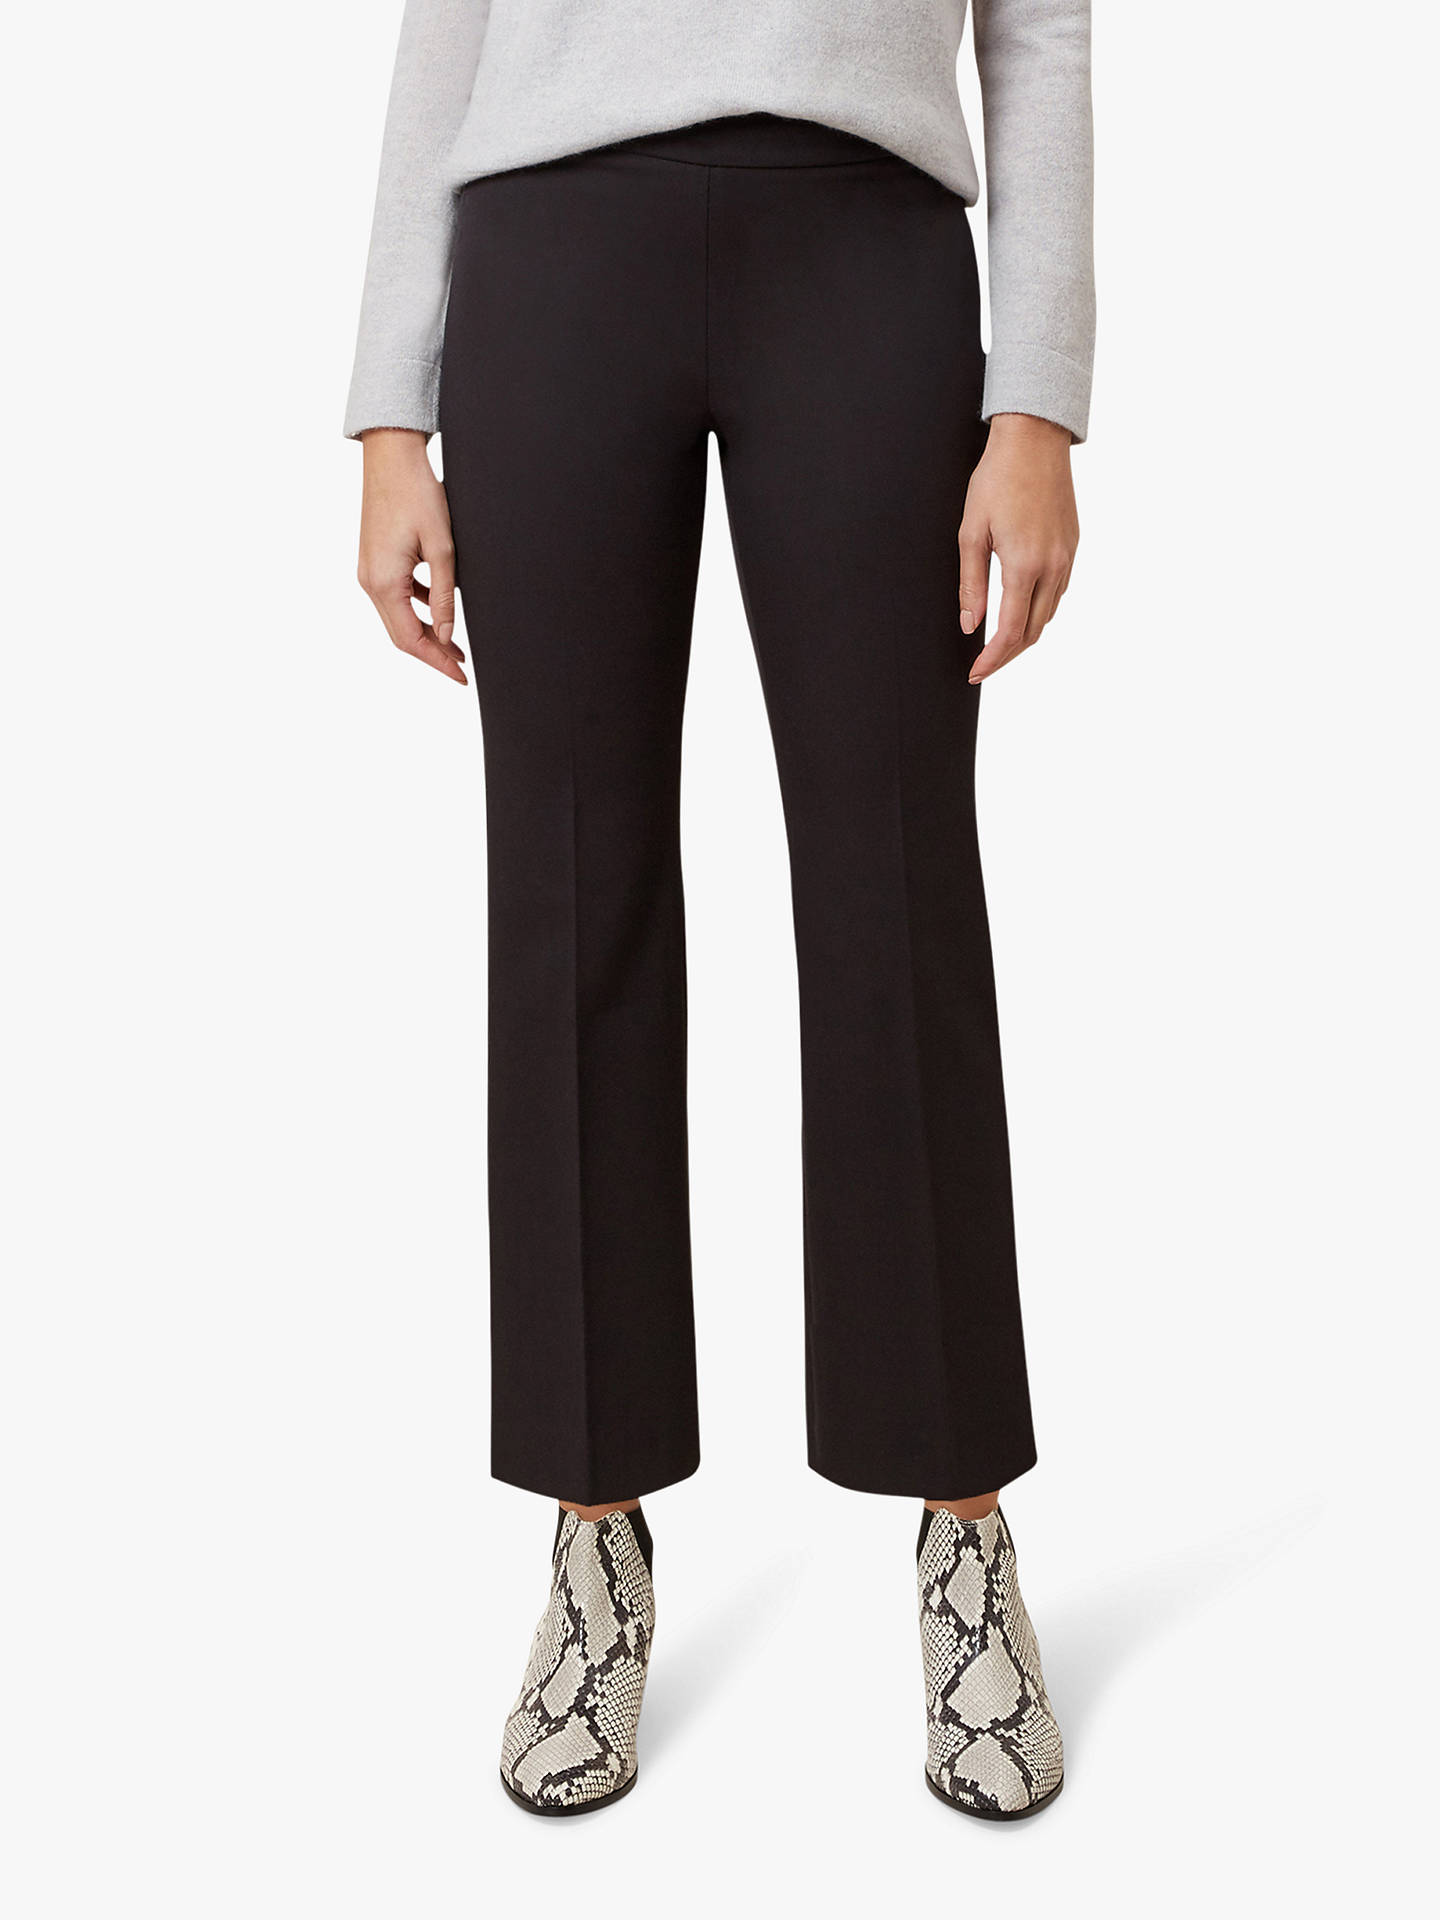 BuyHobbs Amanda Bootcut Cropped Trousers, Black, 10 Online at johnlewis.com